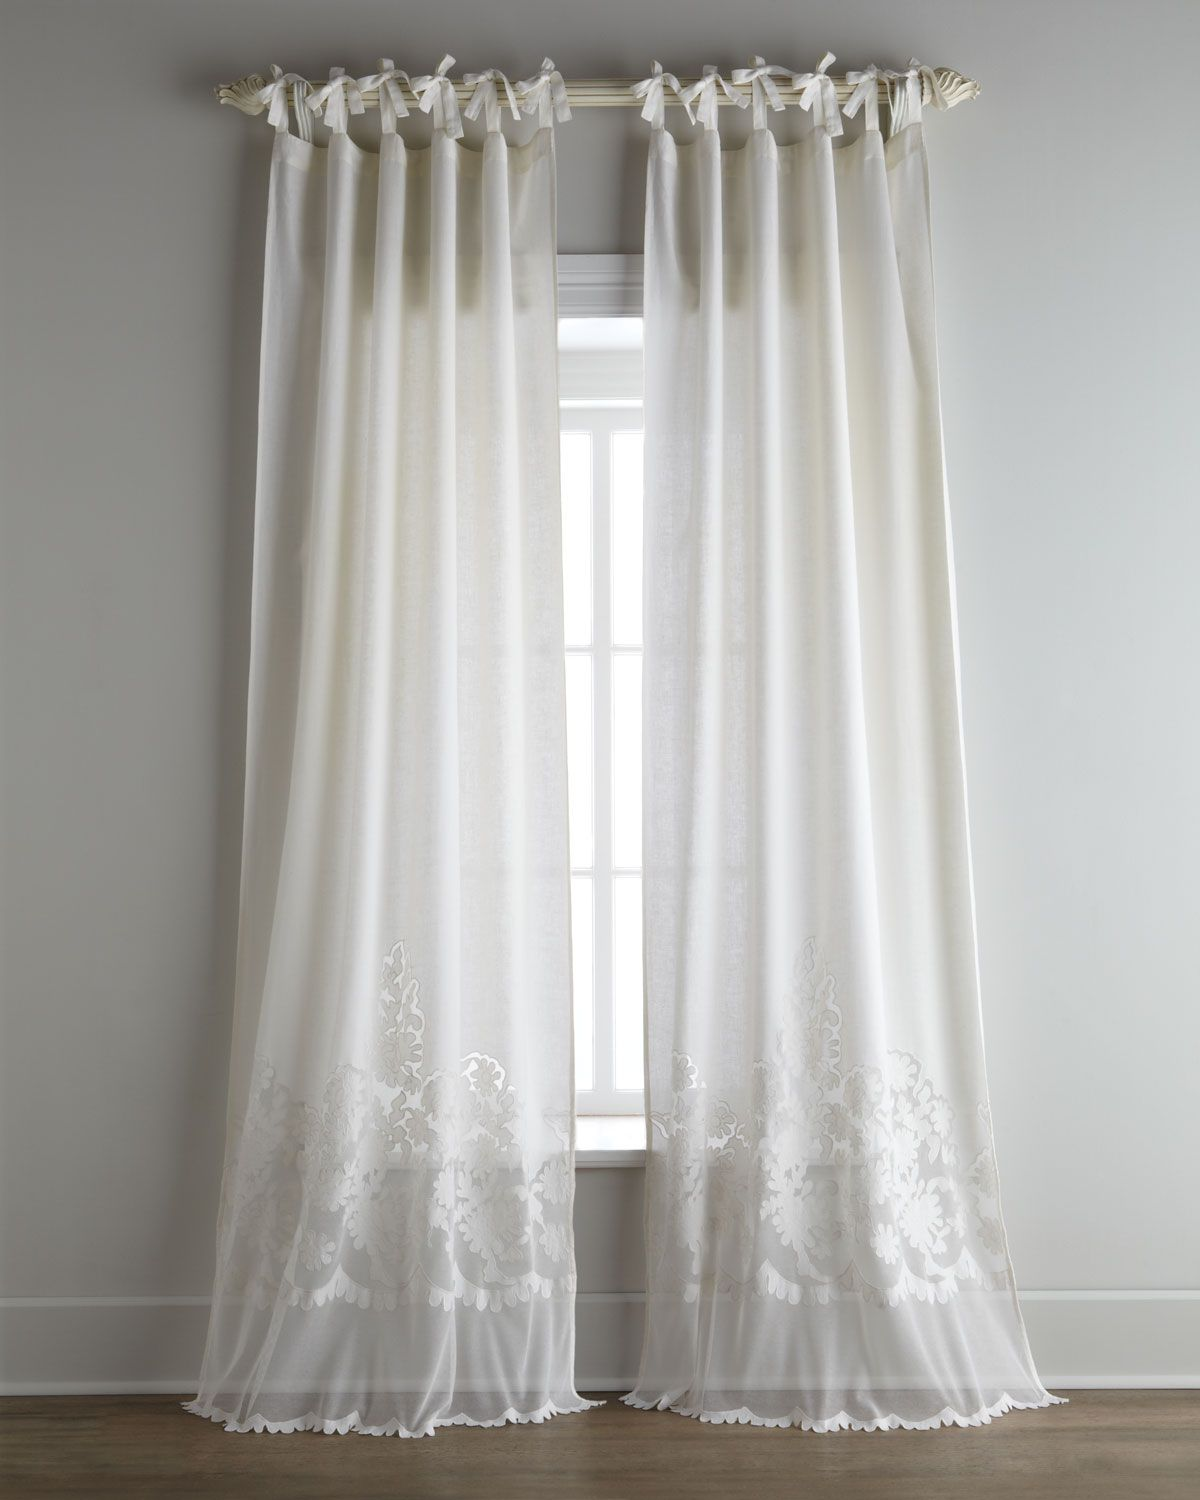 Ho how to tie balloon curtains - Each Caprice Tie Top Curtain Pearl Ivory Pom Pom At Home